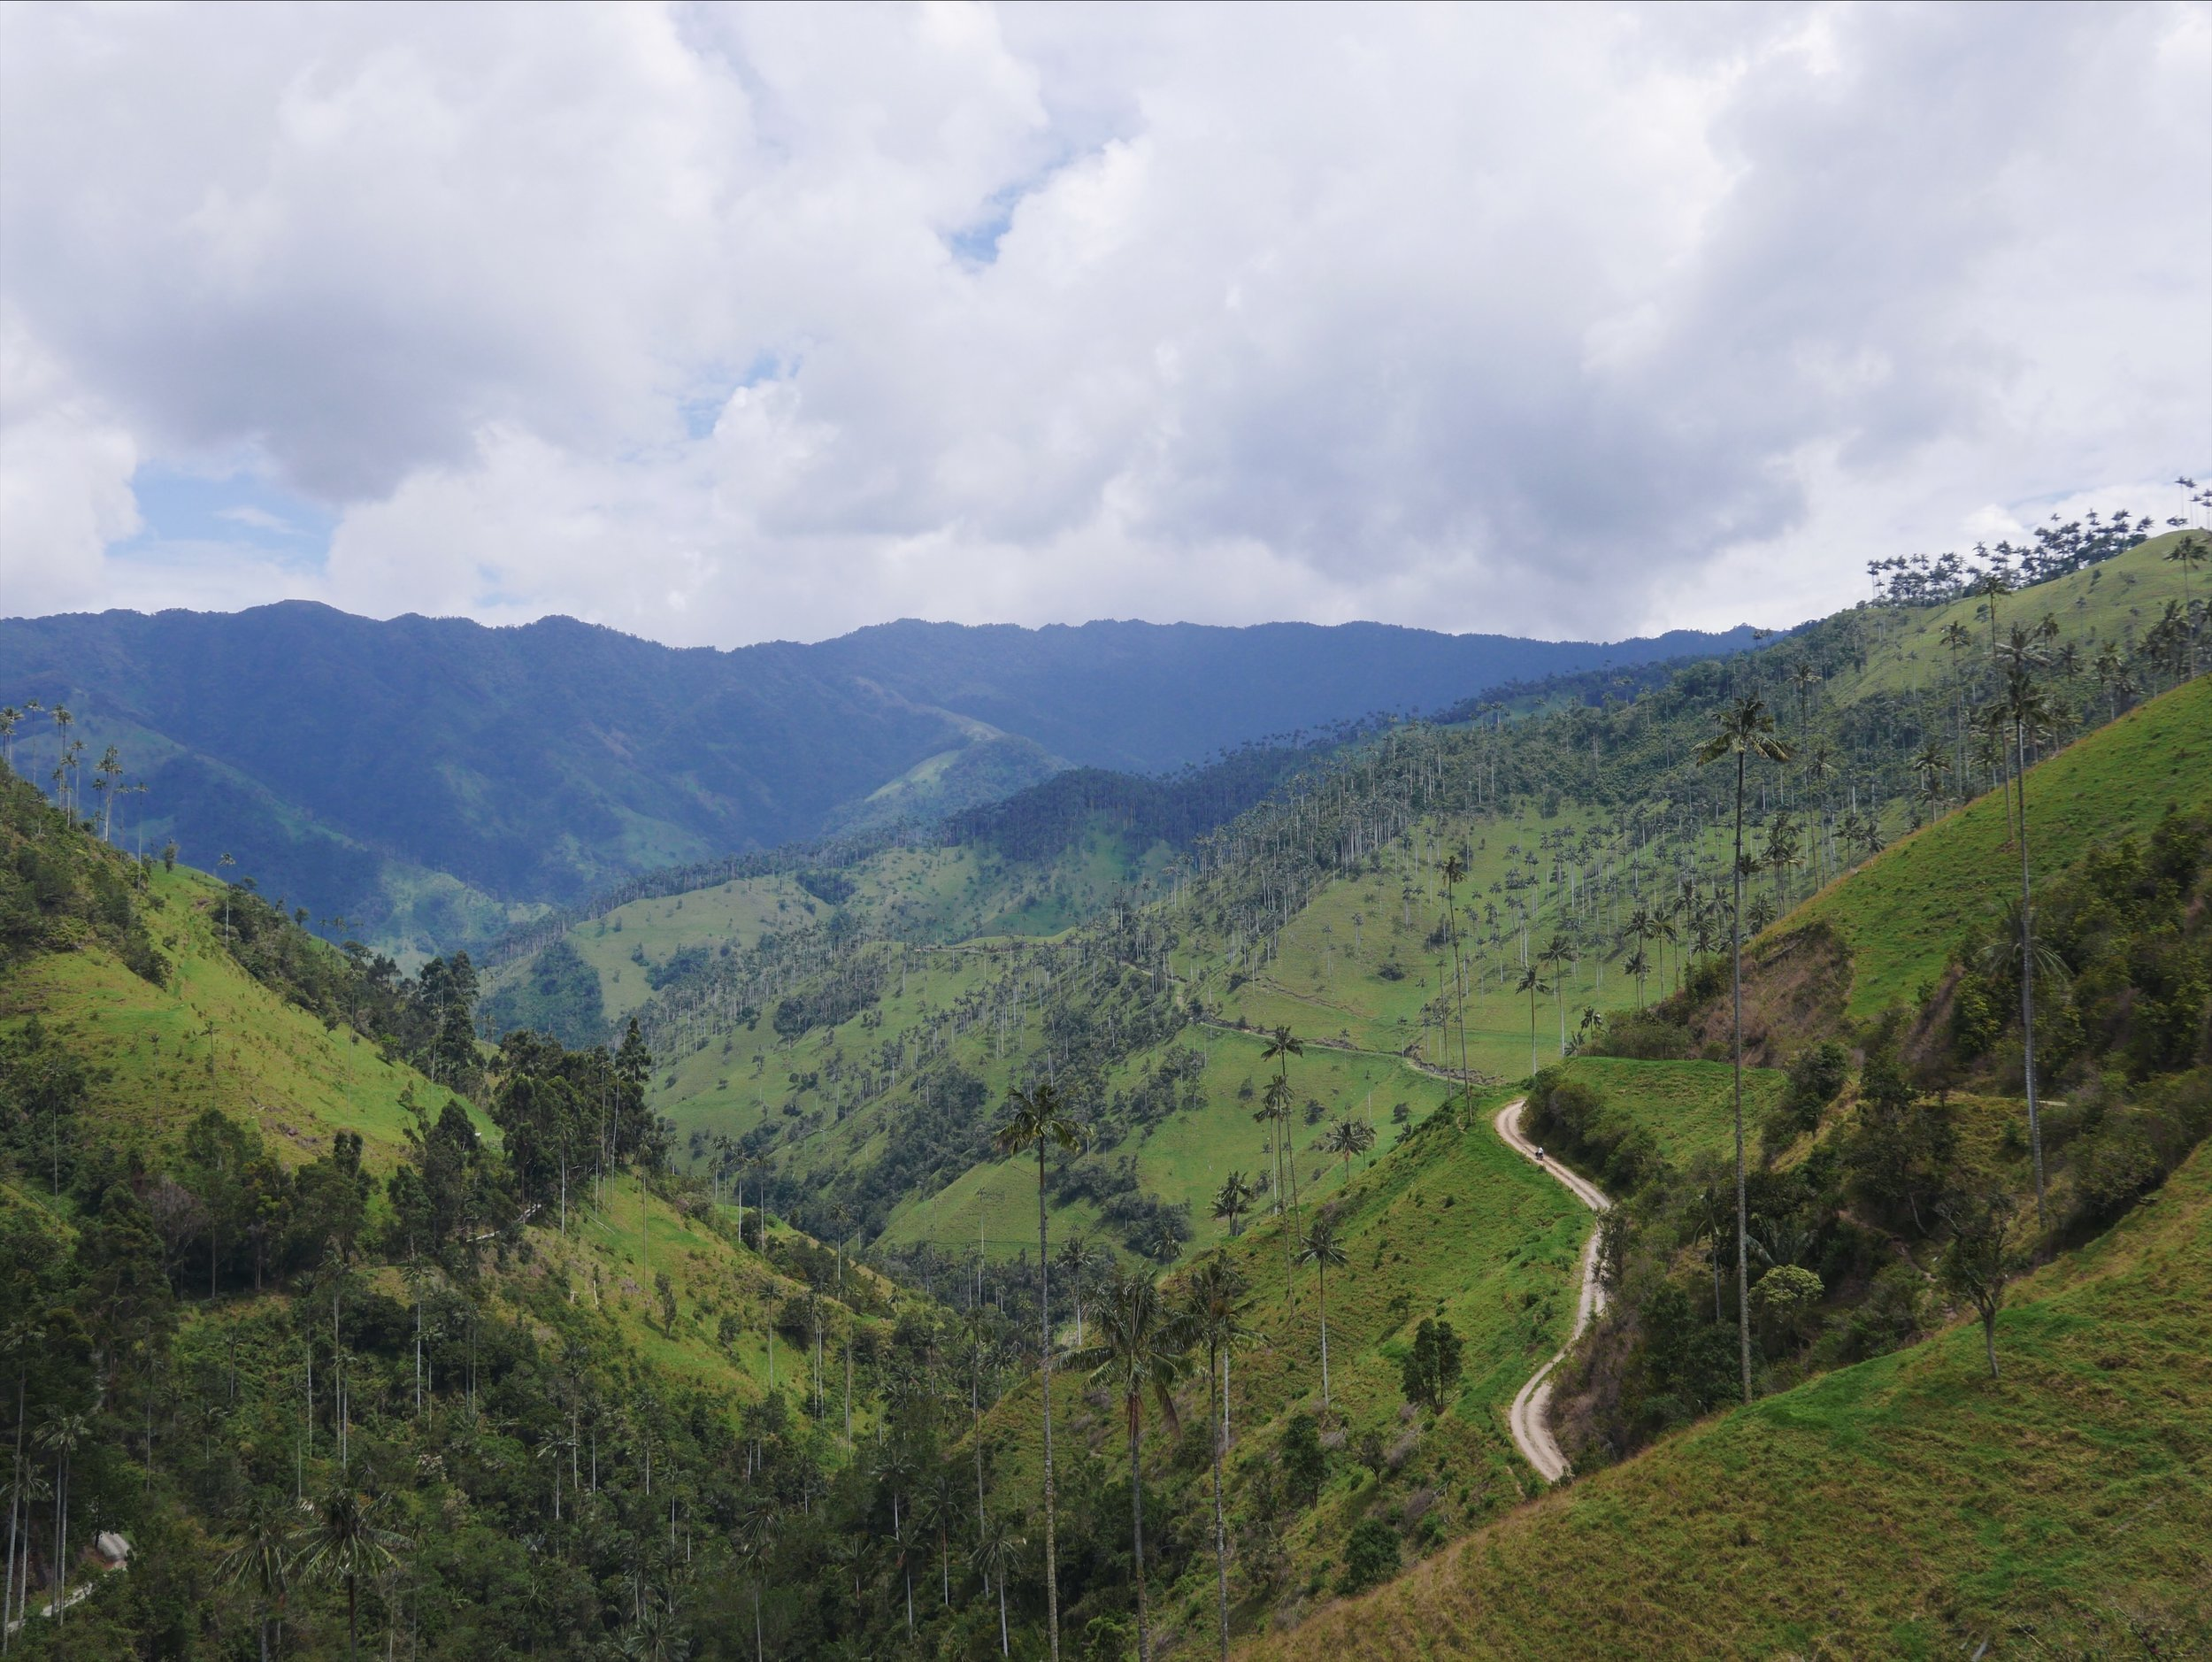 La Carbonera: The more bristled sister valley to the famous Valle de Cocora. Where the Cocora Valley hosts some manicured 900 palms, La Carbonera is estimated to hold over 2 million.